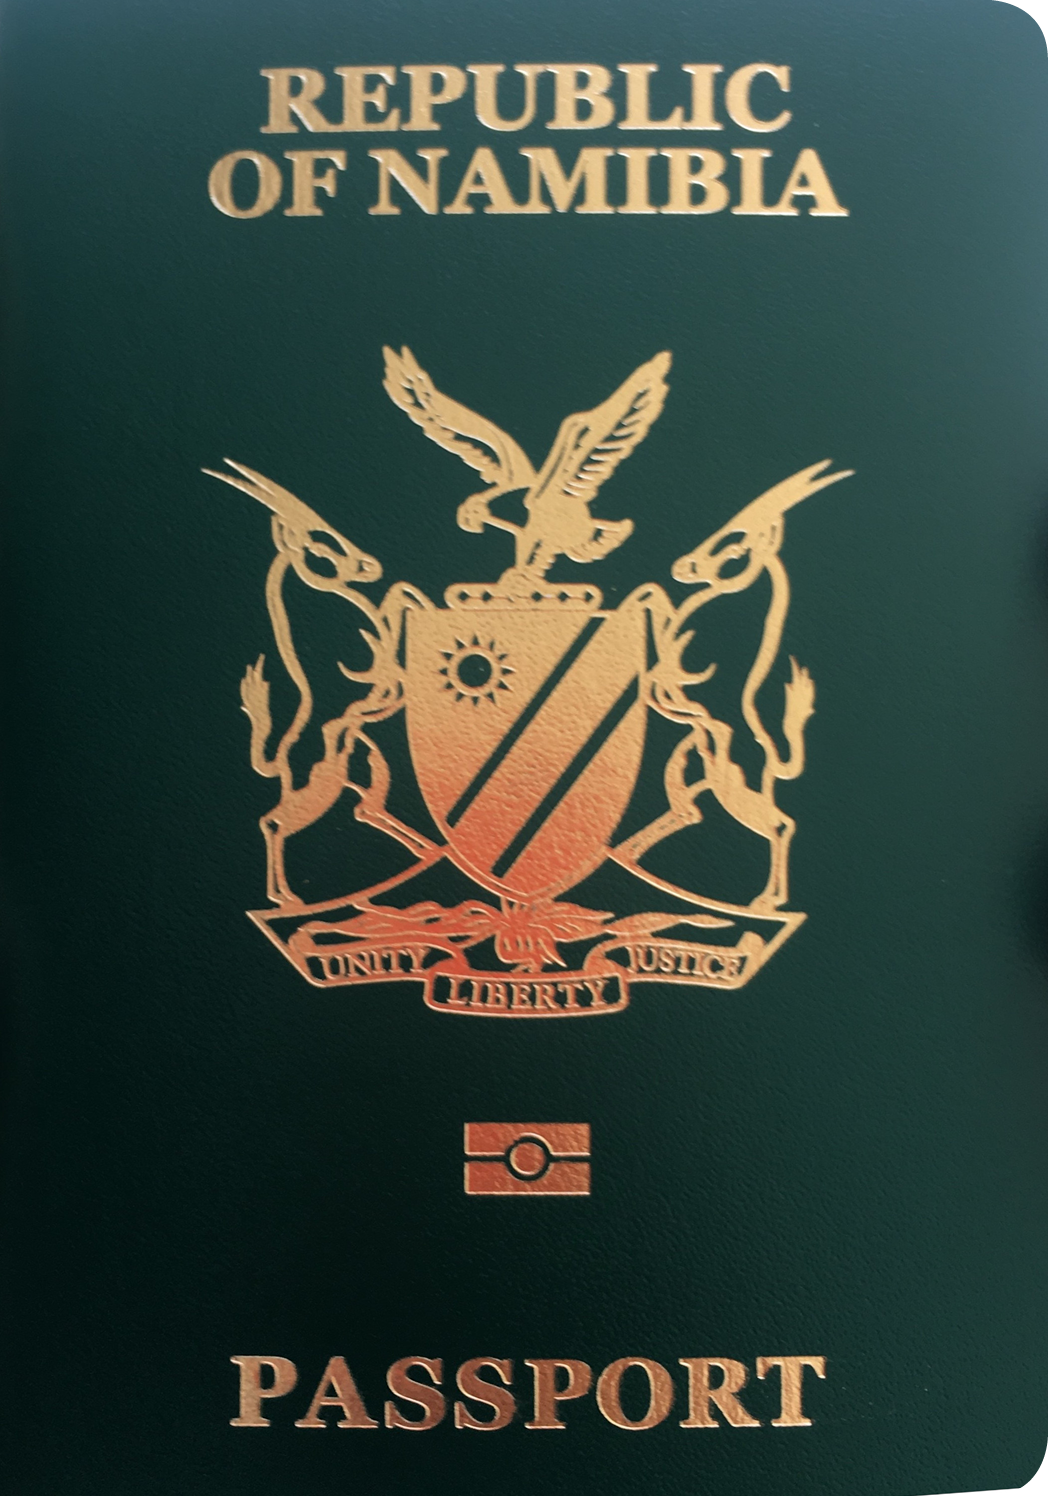 A regular or ordinary Namibian passport - Front side